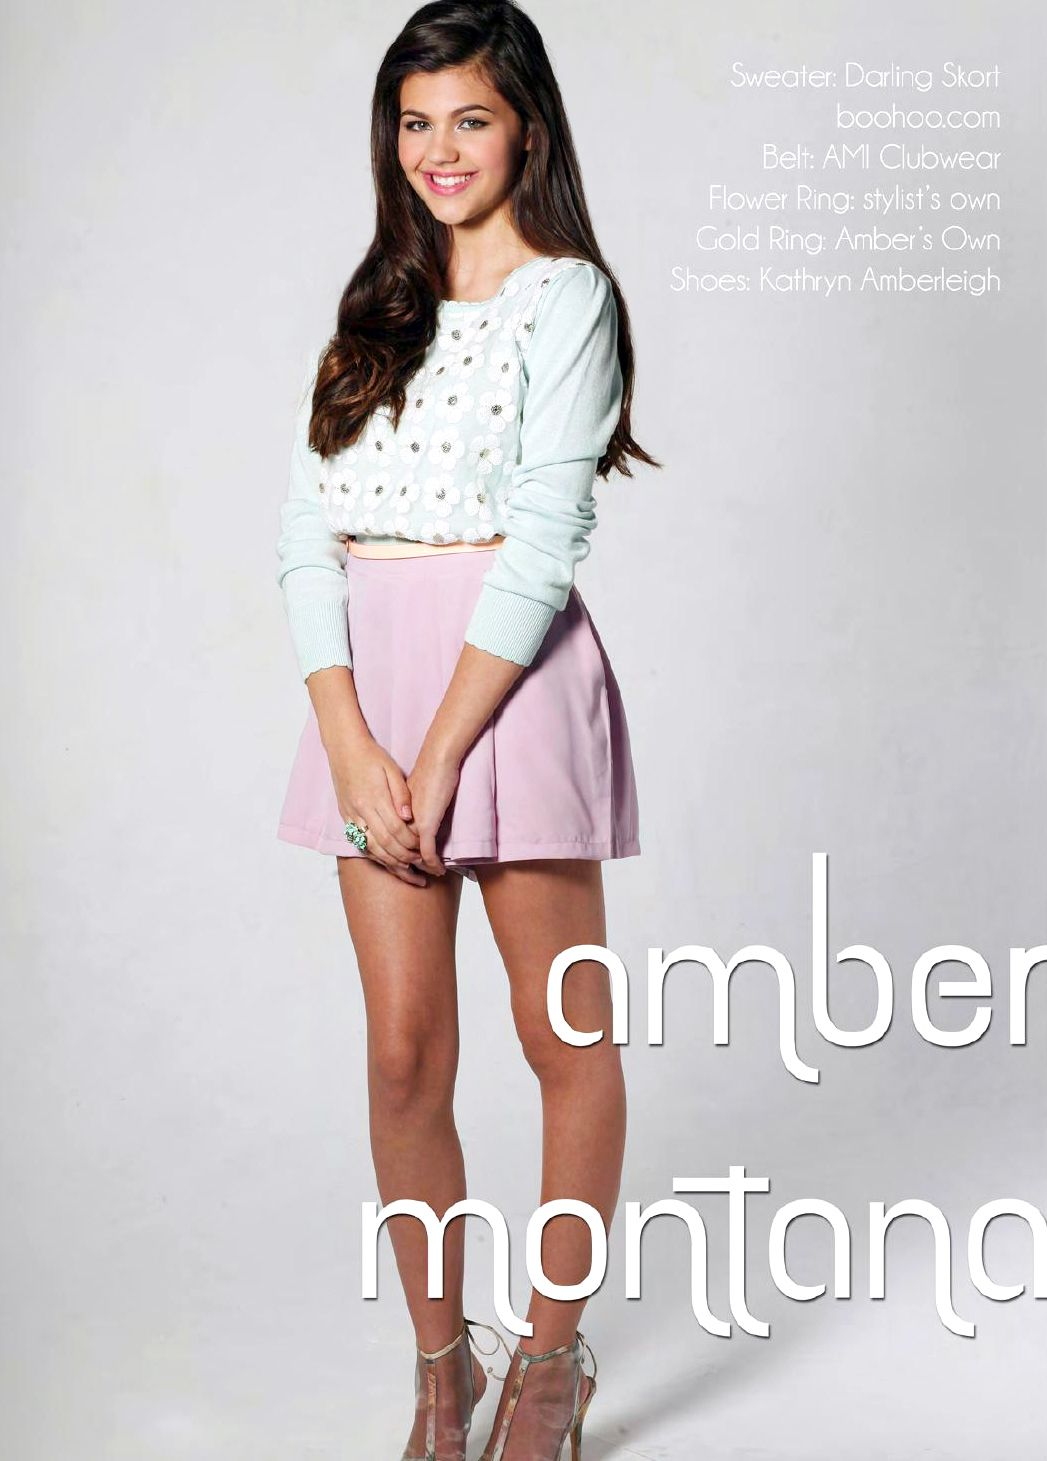 Pictures of Amber Montana - Pictures Of Celebrities